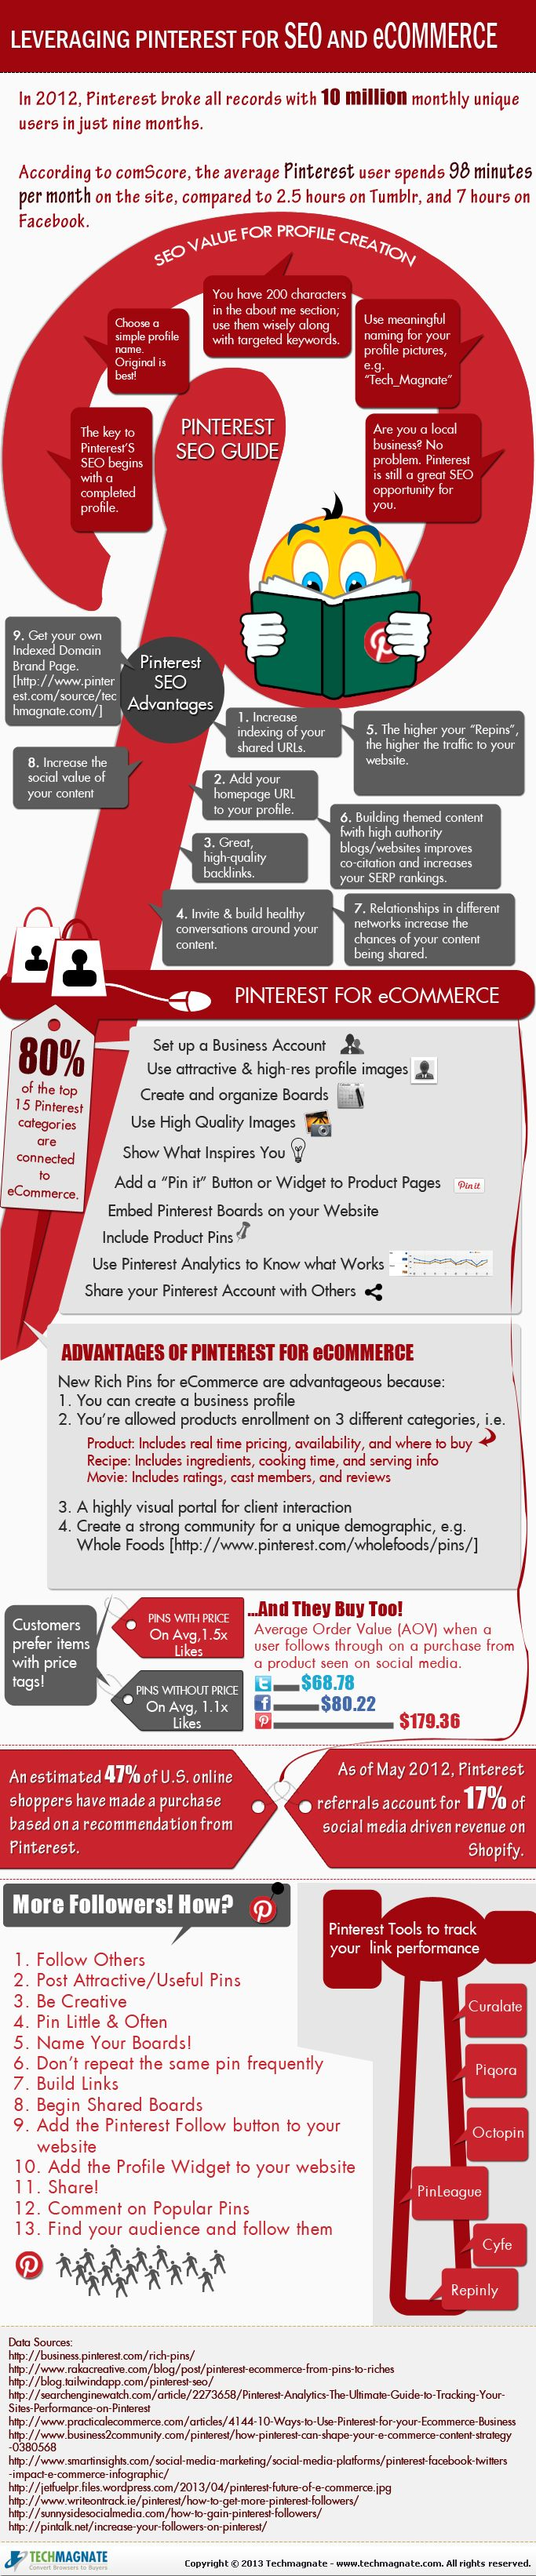 Leverage Pinterest For SEO Infographic